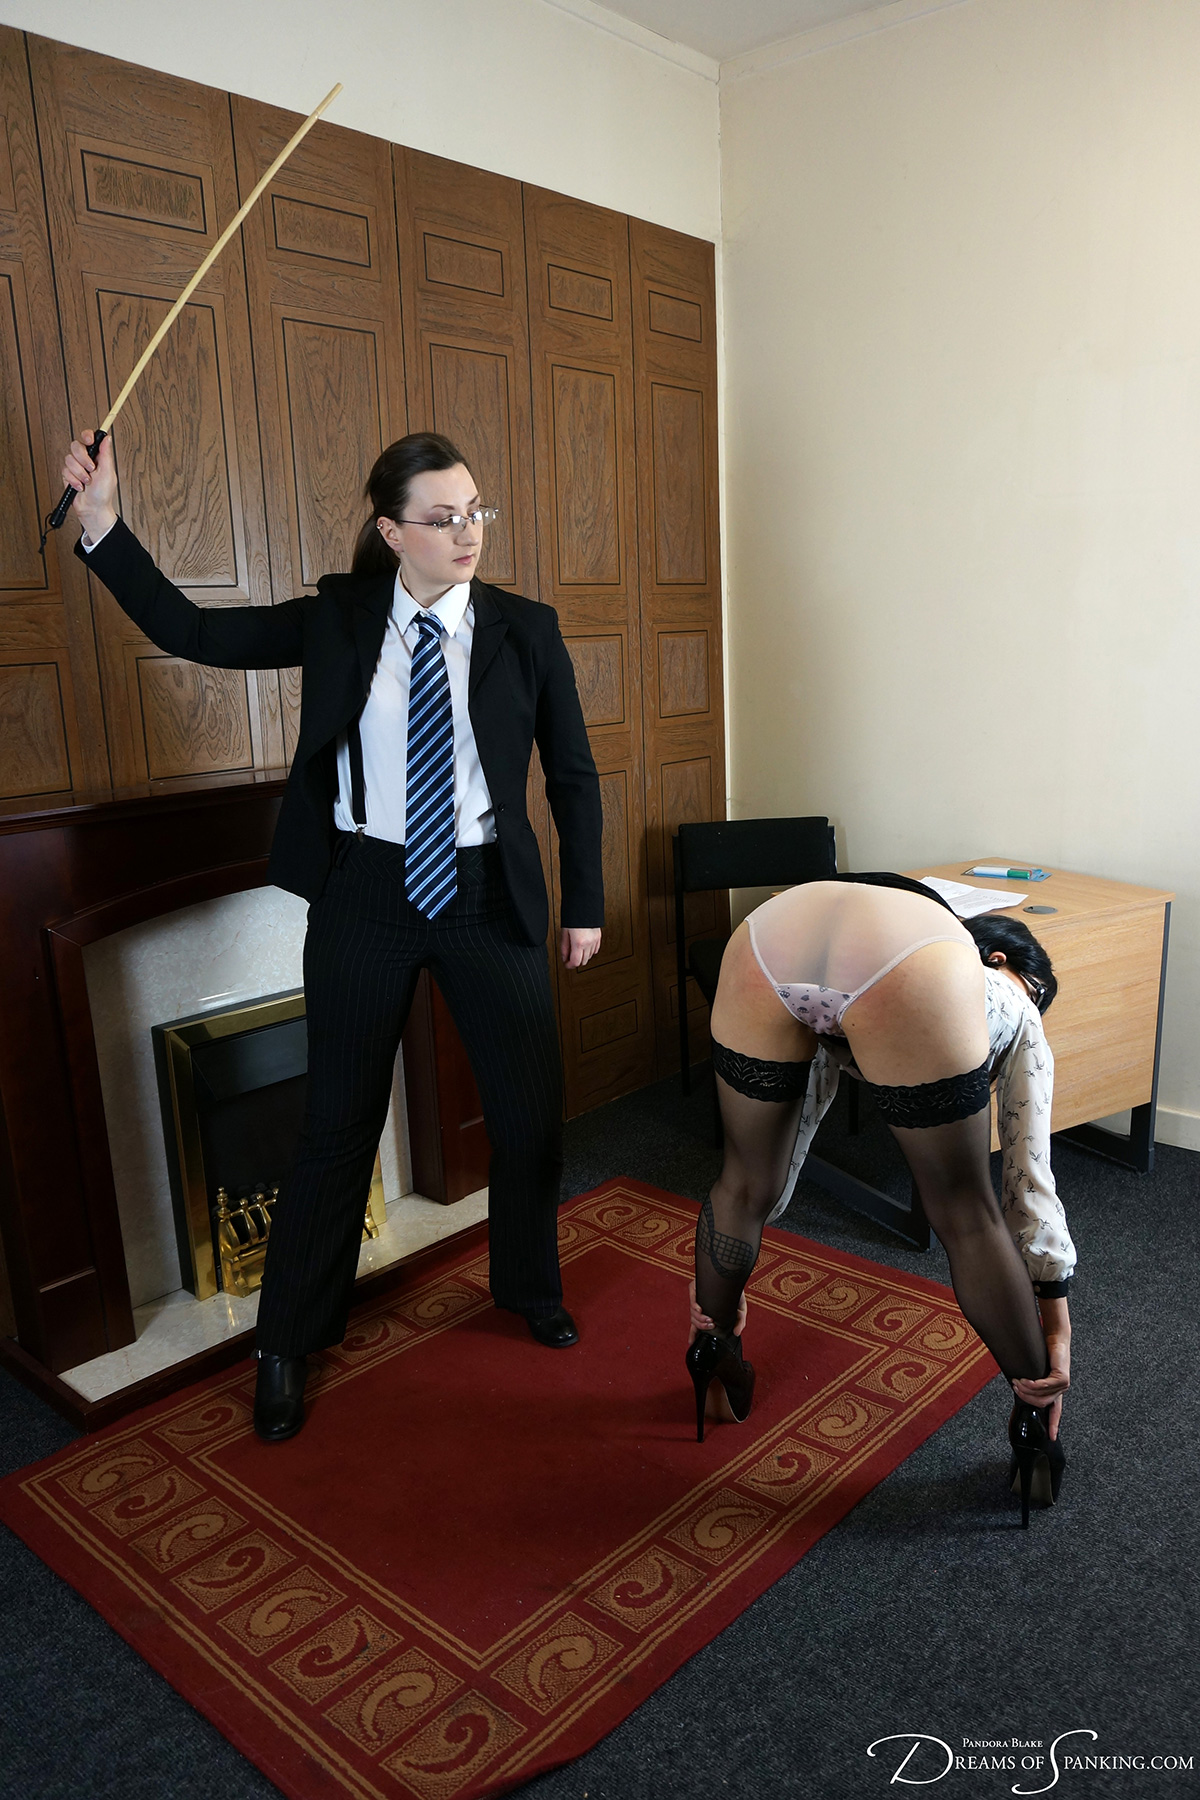 Ms Vixxxen photographed by Pandora Blake for Dreams of Spanking